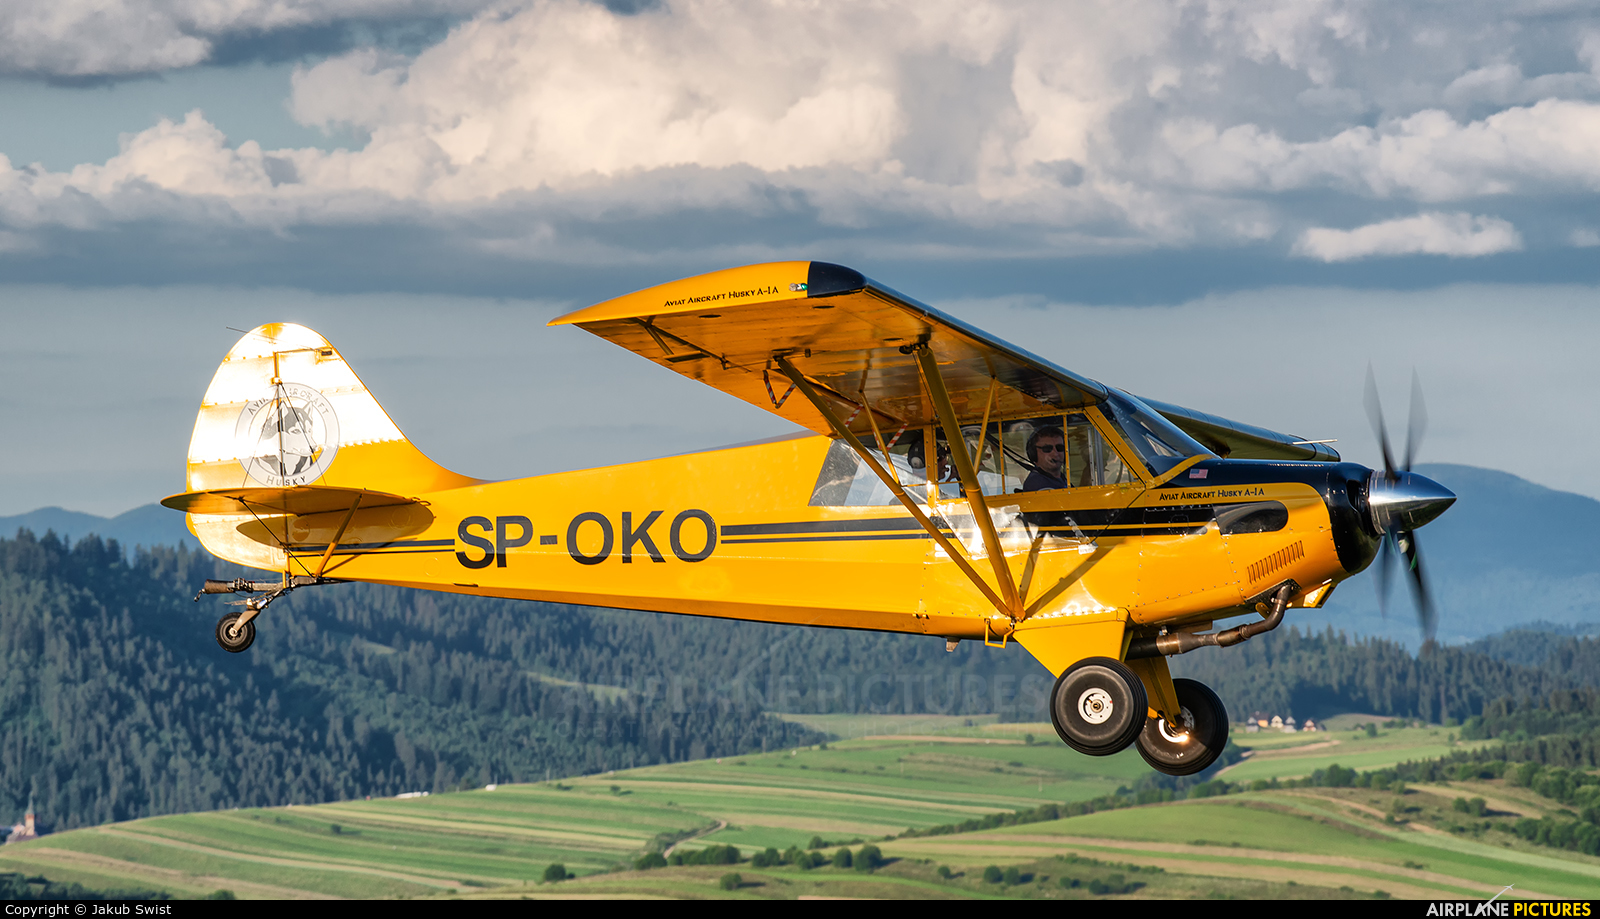 Aeroklub Nowy Targ SP-OKO aircraft at In Flight - Poland